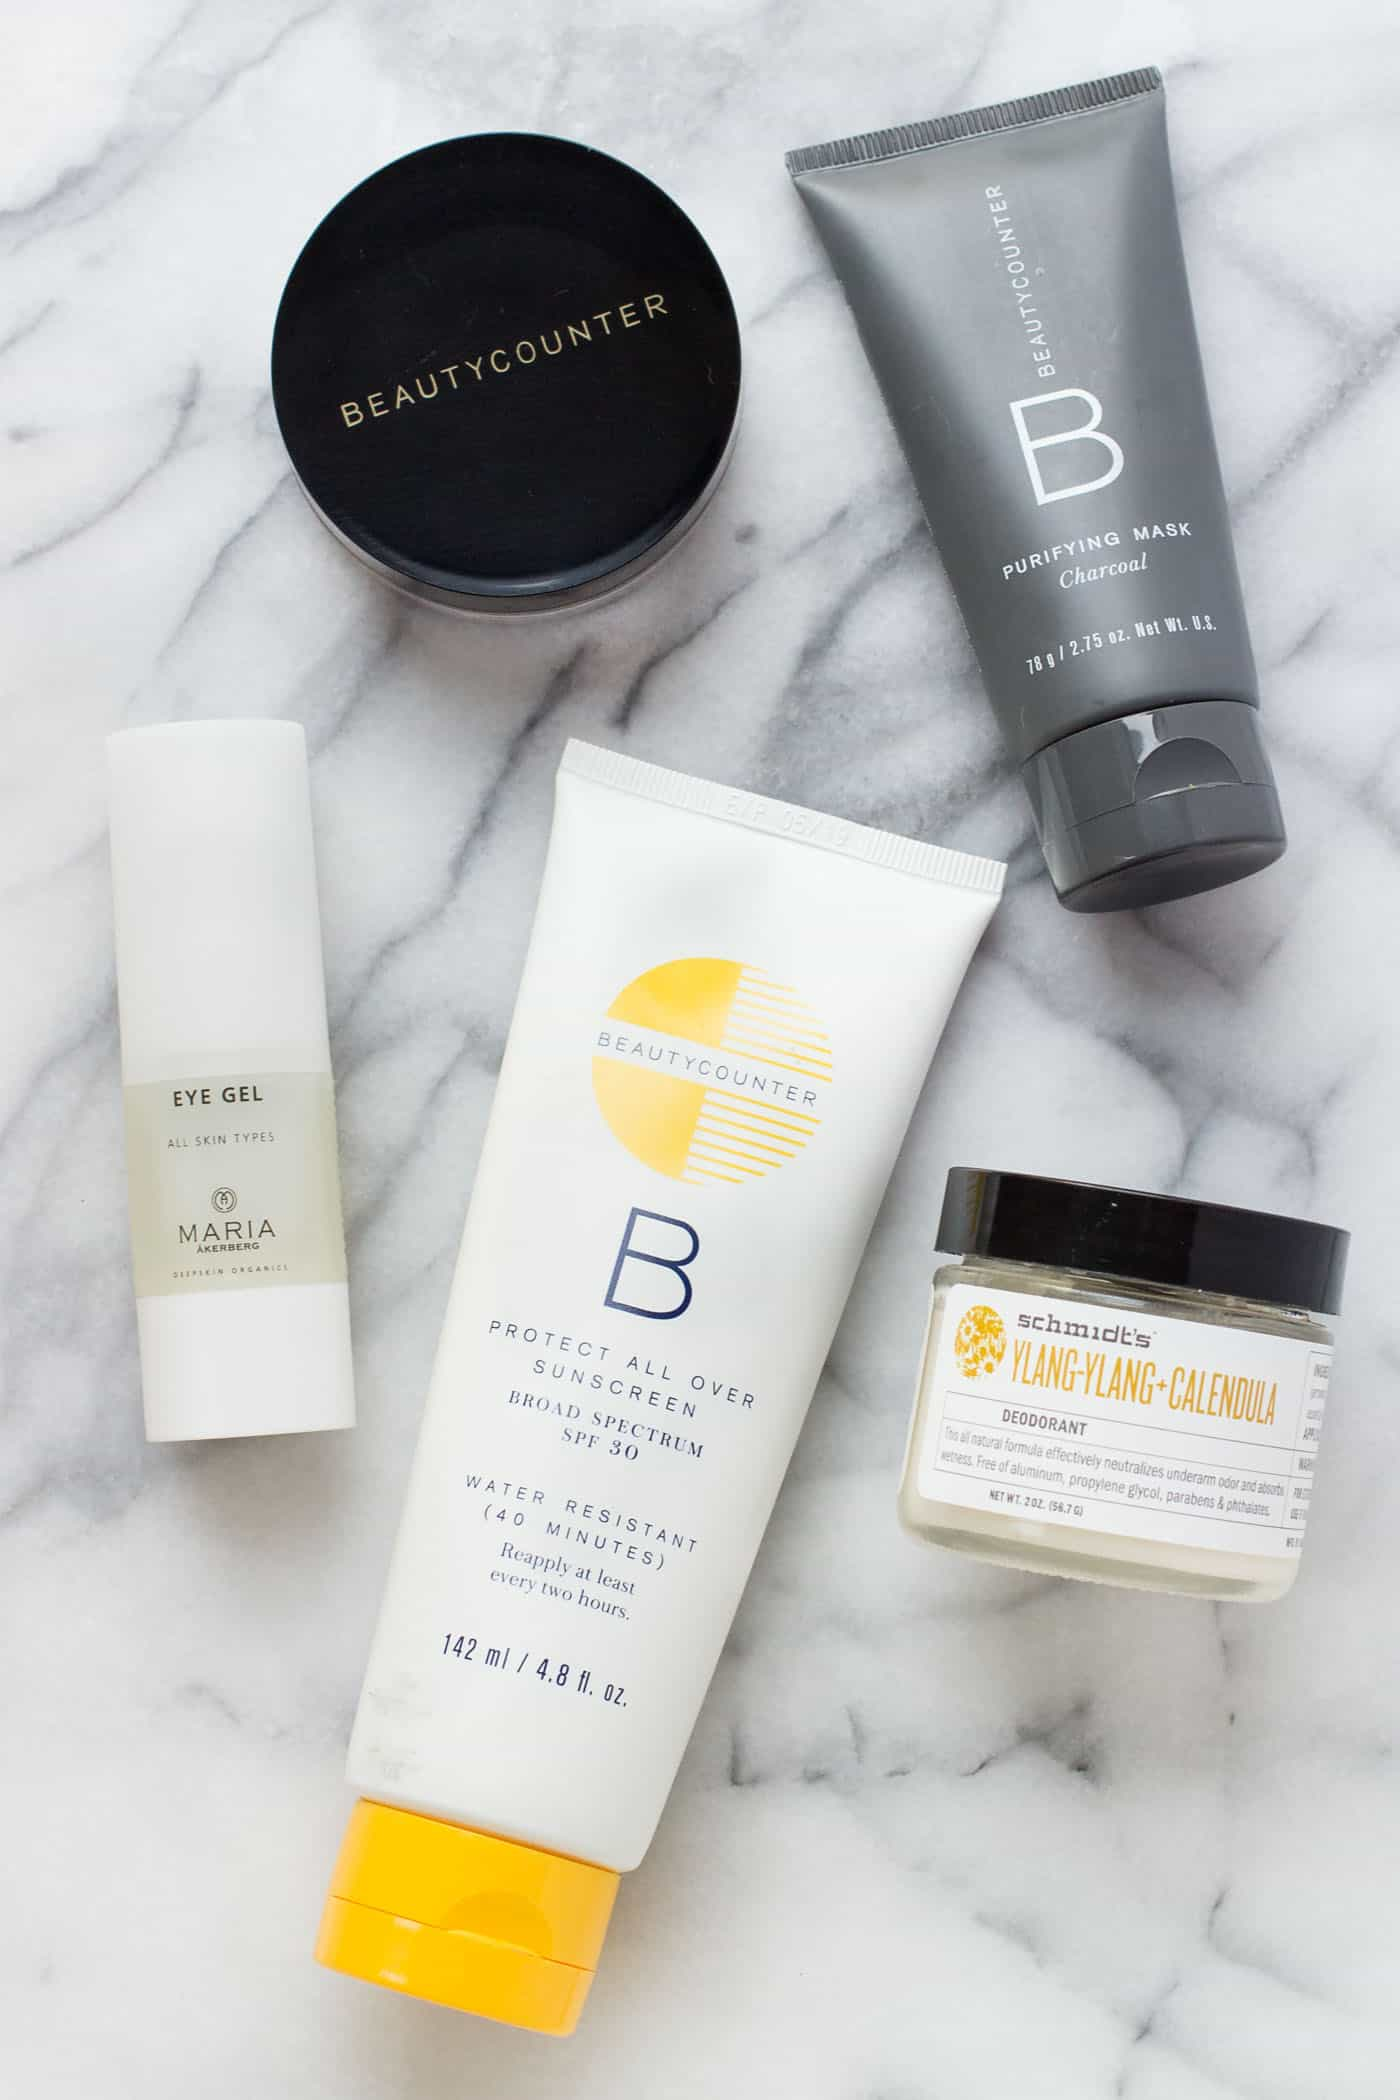 My favorite natural beauty products for the month including all natural deodorant, an eye gel and more!